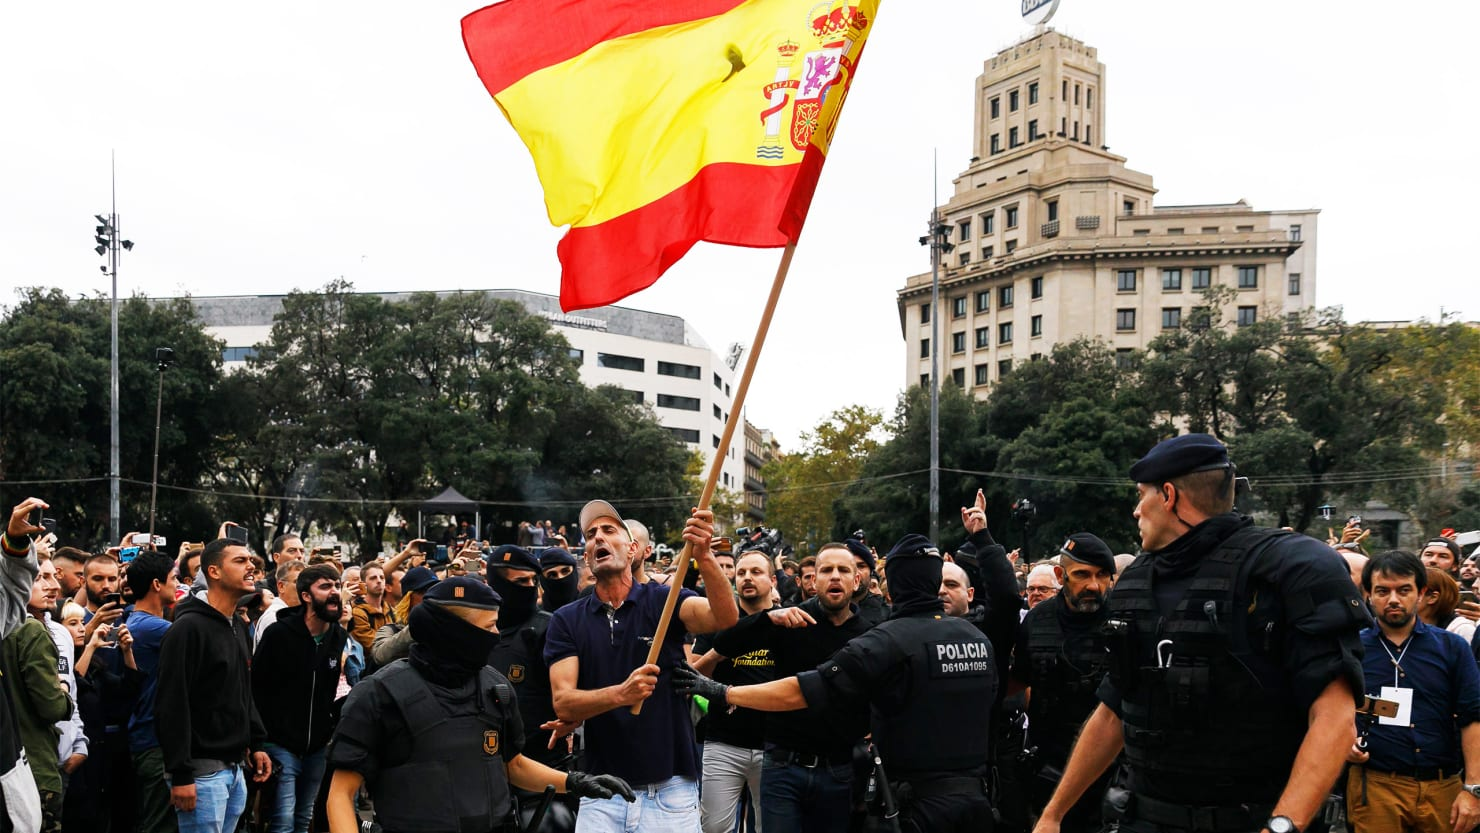 Spanish Police brutality shocks Europe